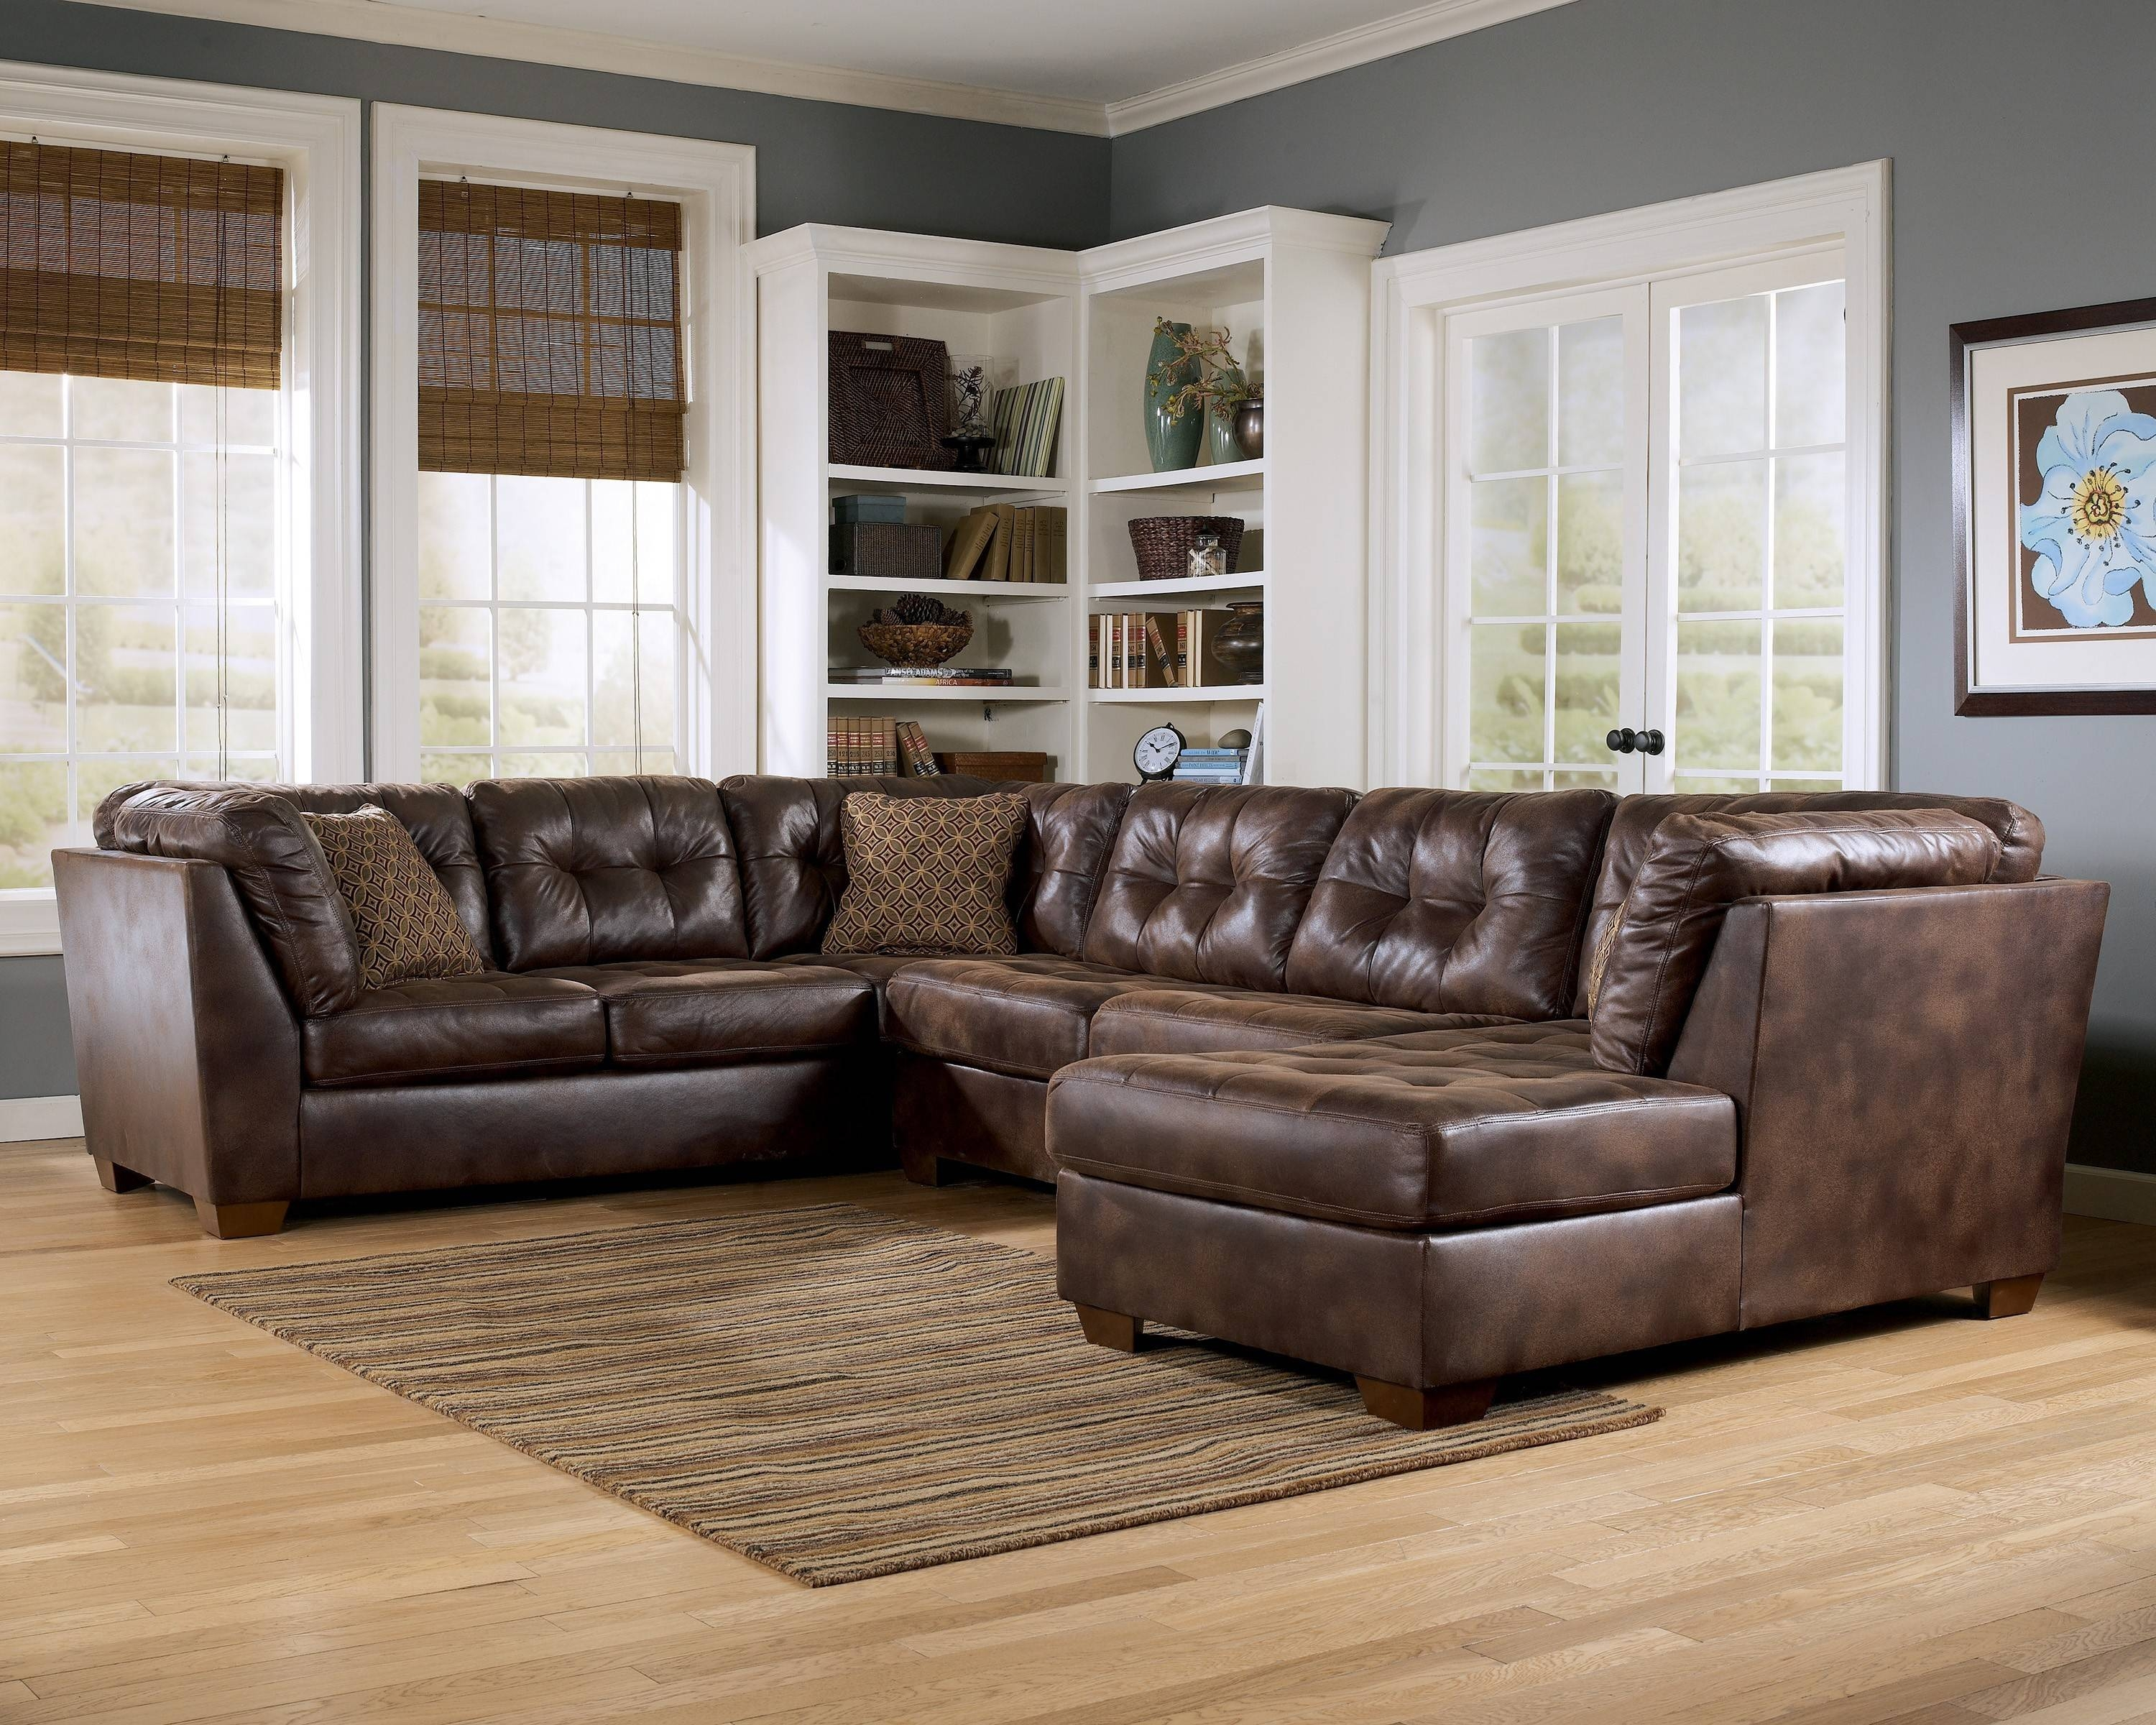 Furniture: Remarkable American Freight Sectionals For Cozy Living with regard to Cozy Sectional Sofas (Image 14 of 30)